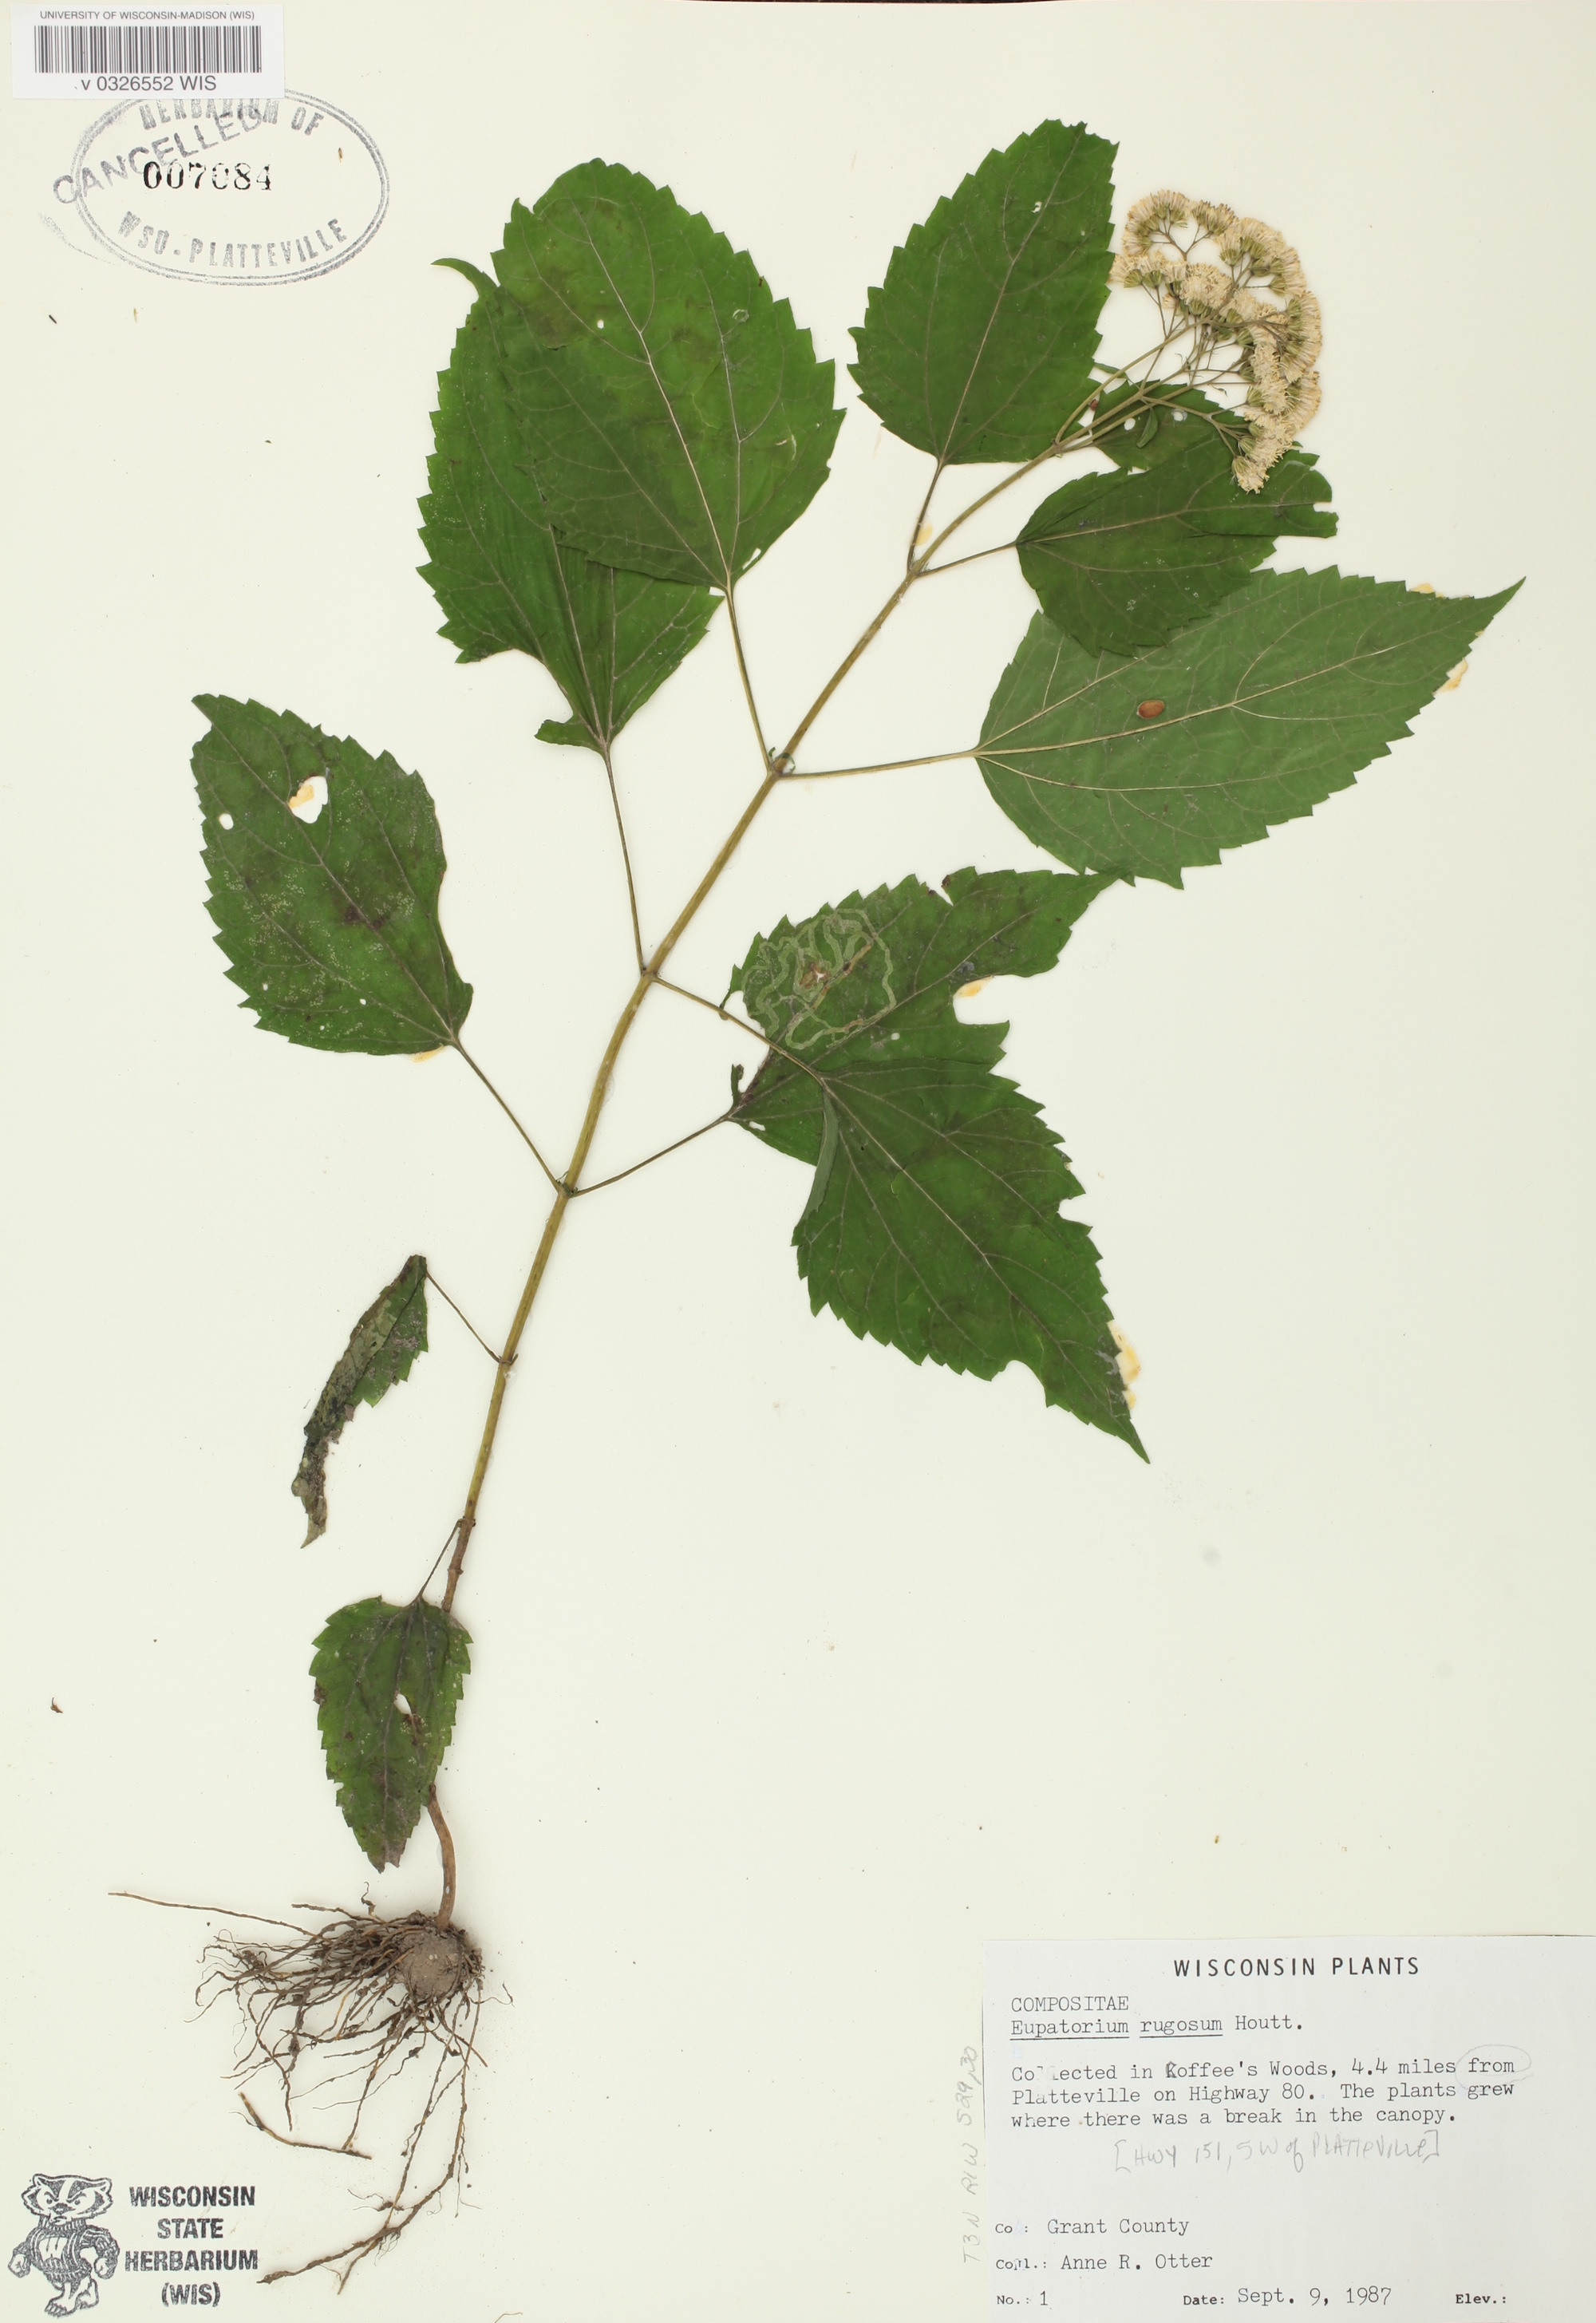 White Snakeroot specimen collected in Grant County near Platteville on September 9, 1987.